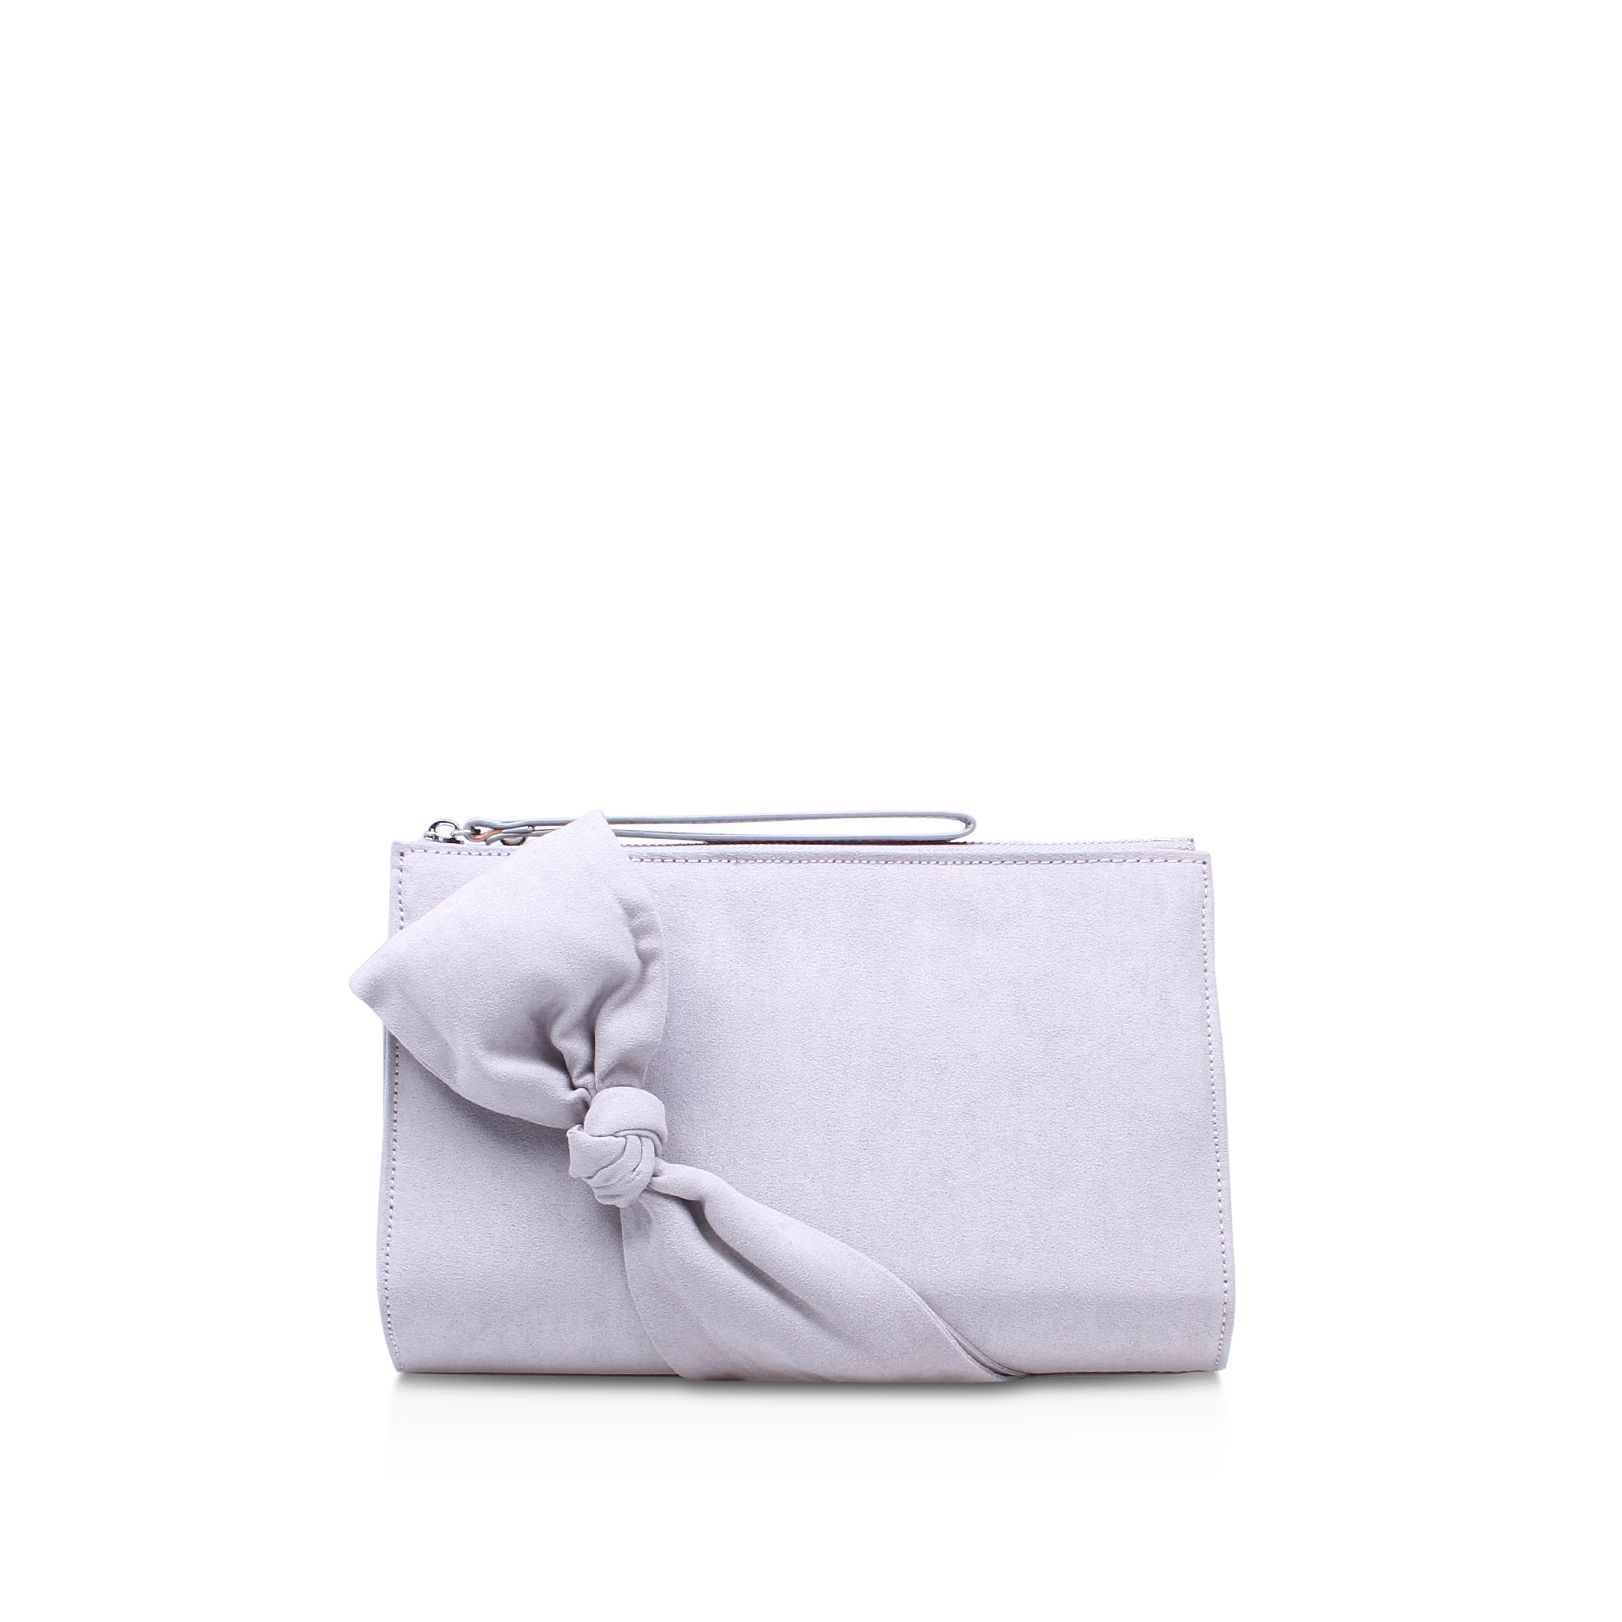 Carvela Dame clutch bag, Grey